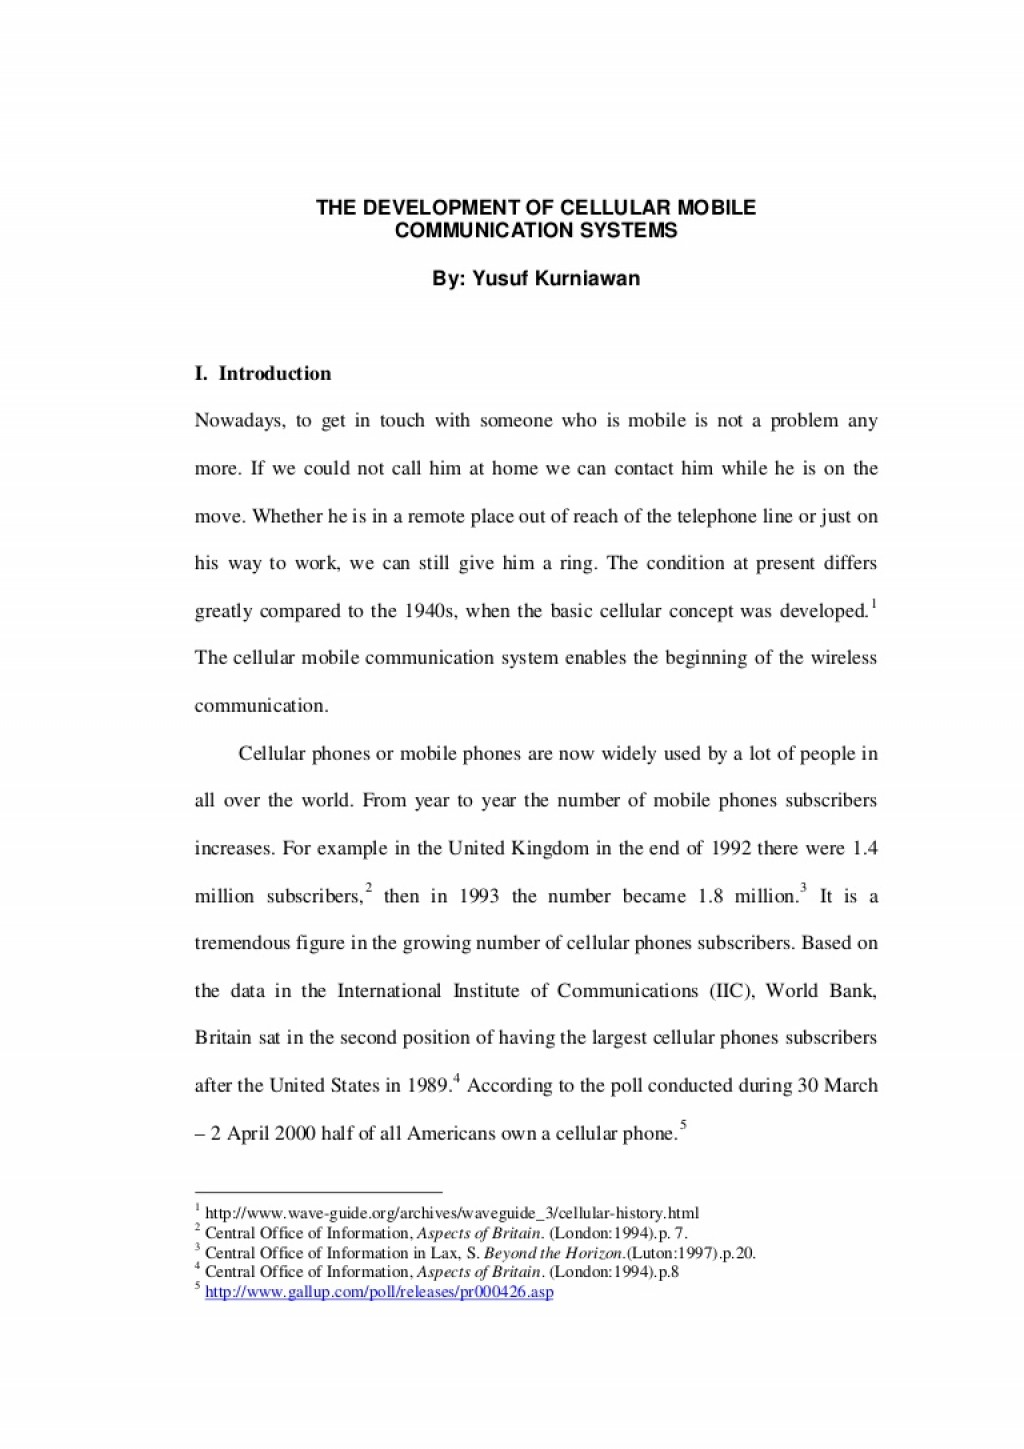 005 Cell Phoney Persuasive On Phones In School Year Round Should Cellphones Banned Argumentative Mobilephonedevelopment Phpapp01 Thumbn Allowed Not Mobile Reasons Why Impressive Phone Essay Advantages And Disadvantages Tamil Introduction Pdf Essays Large